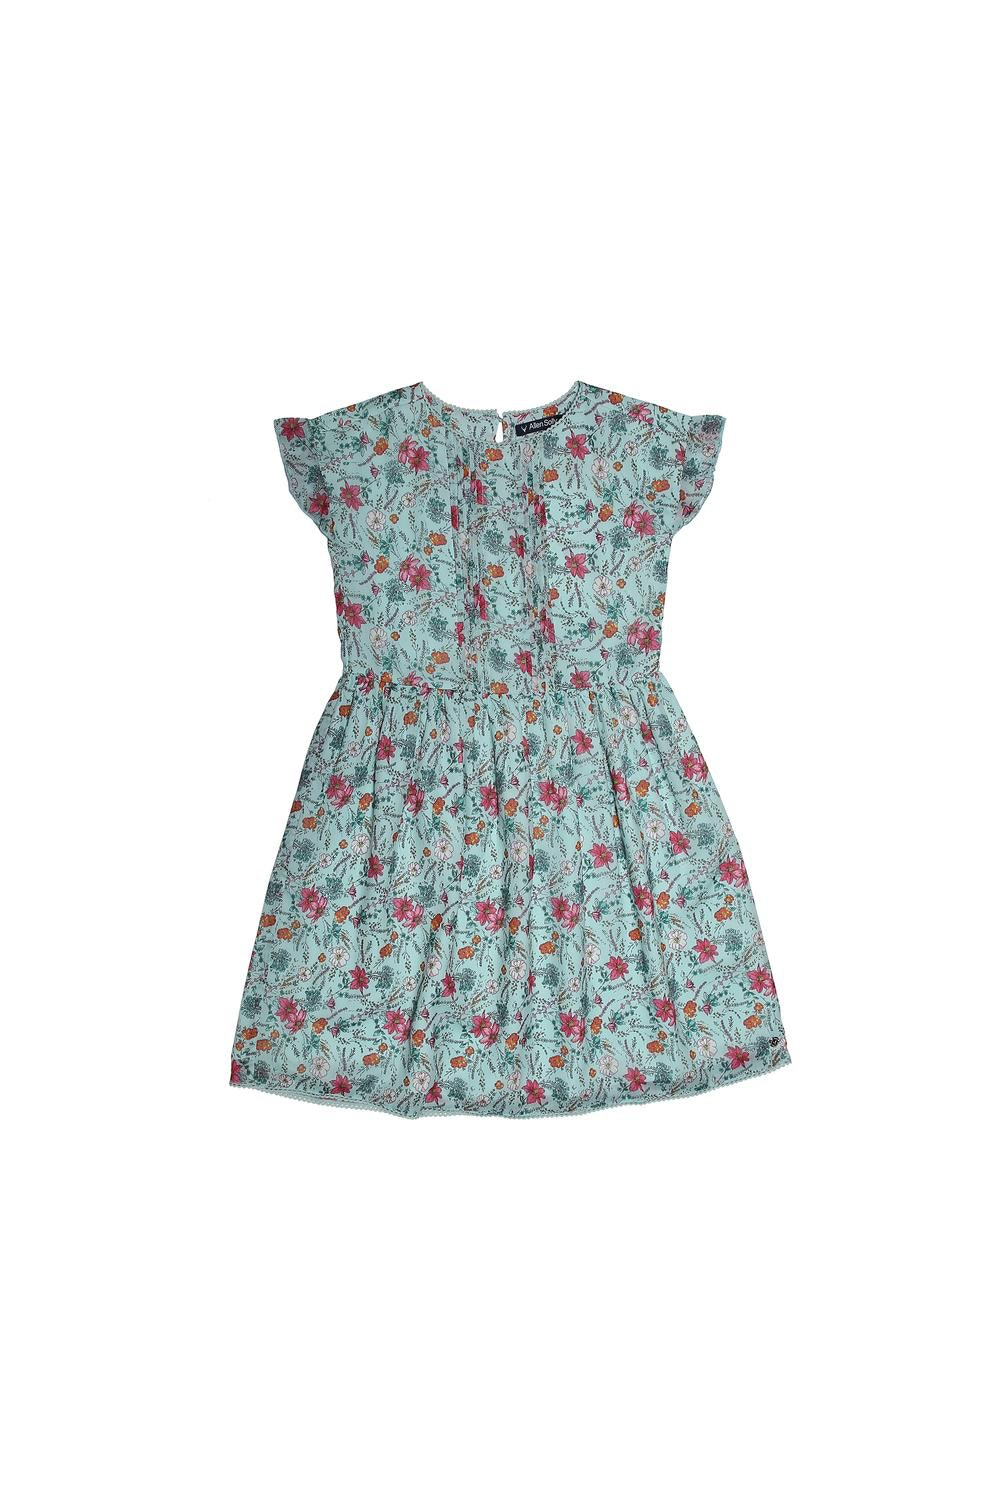 47e4aedc0a82 Buy Allen Solly Frocks Online for Kids